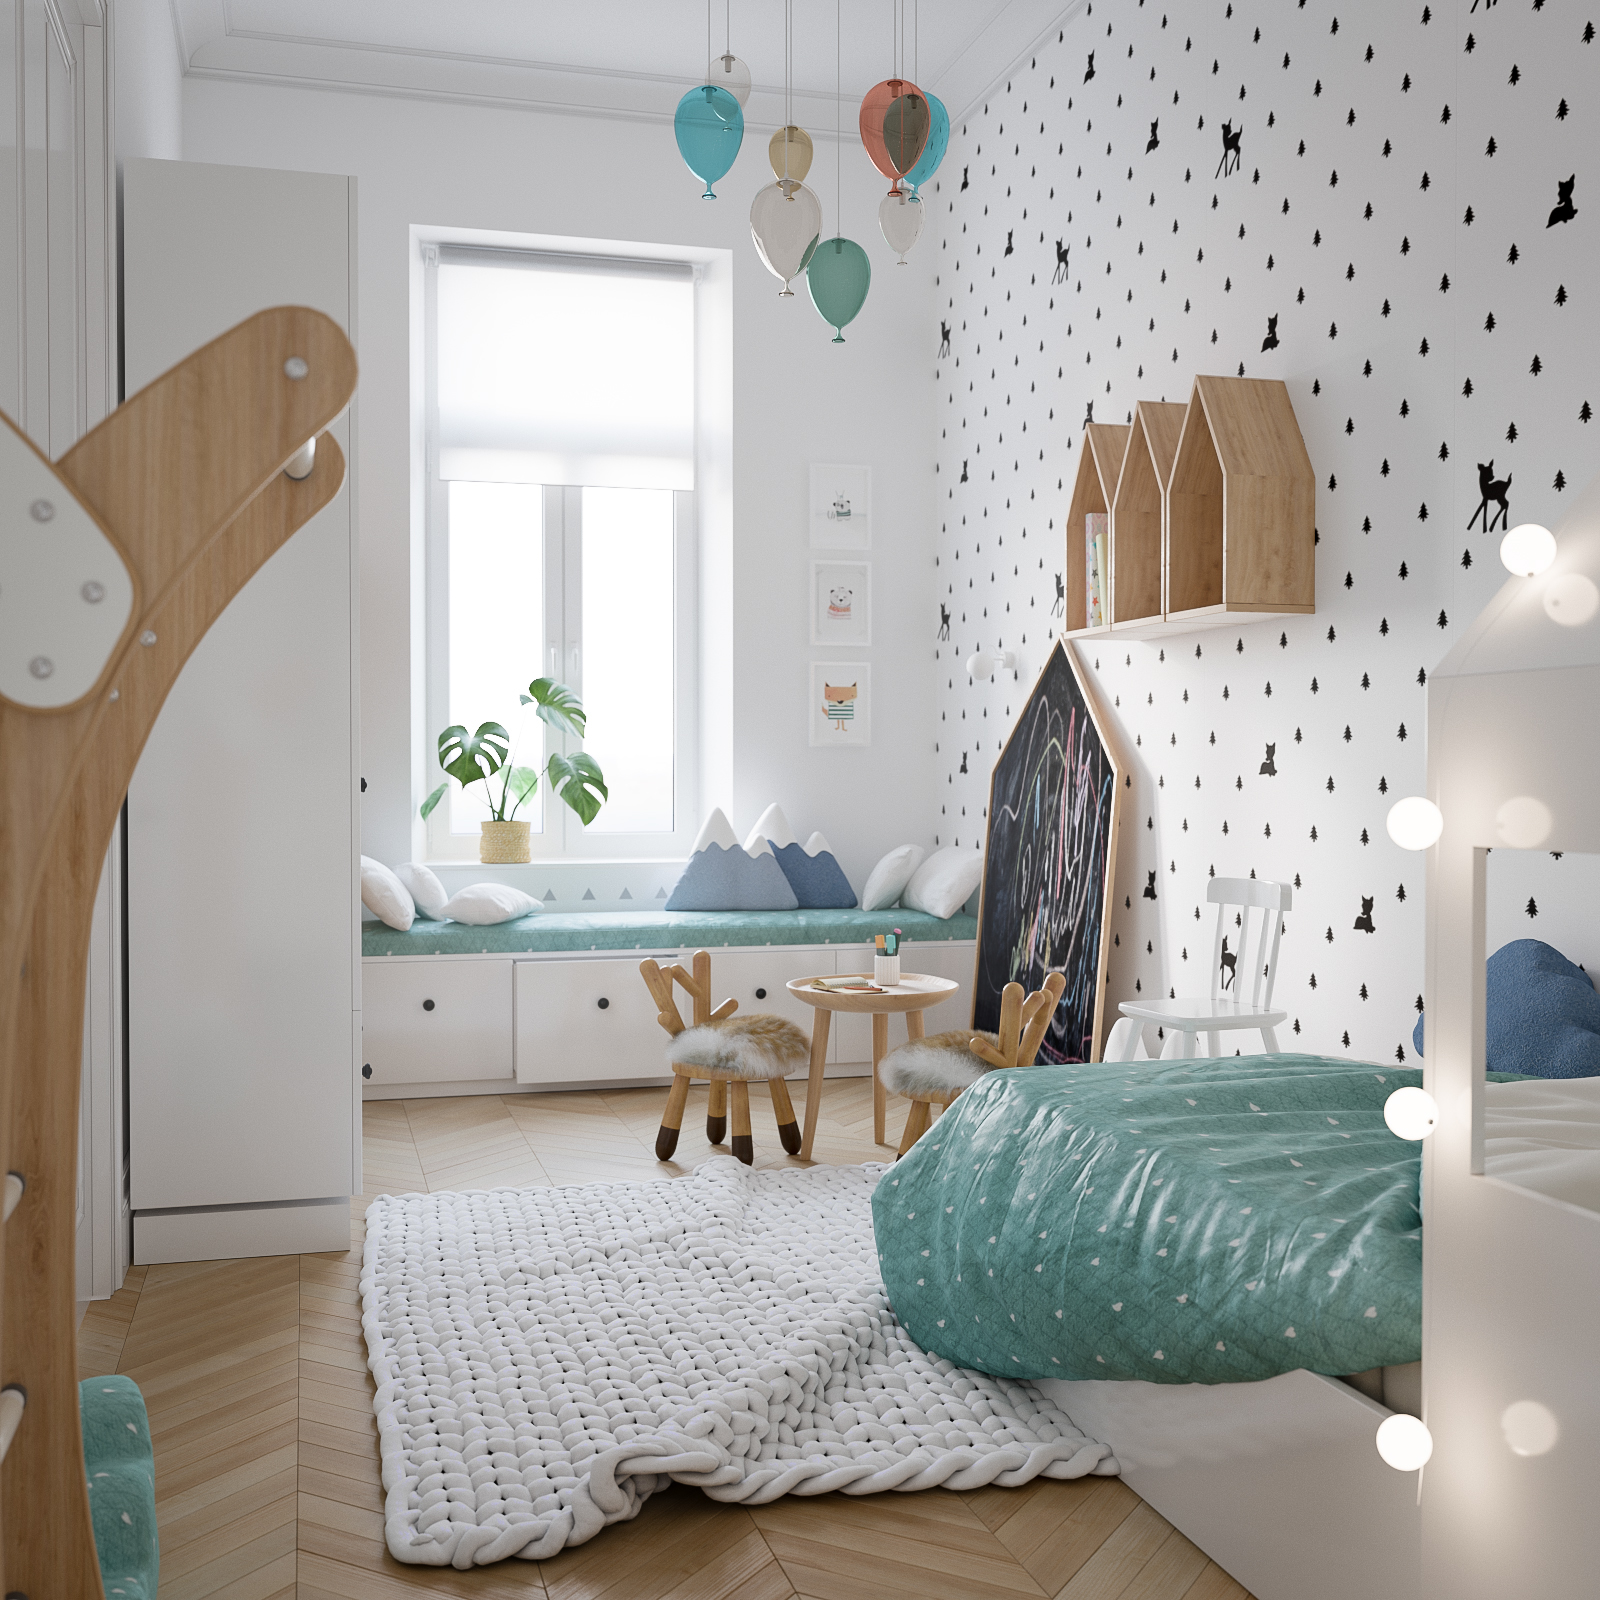 Kids Room Decor: Modern Scandinavian Style Home Design For Young Families